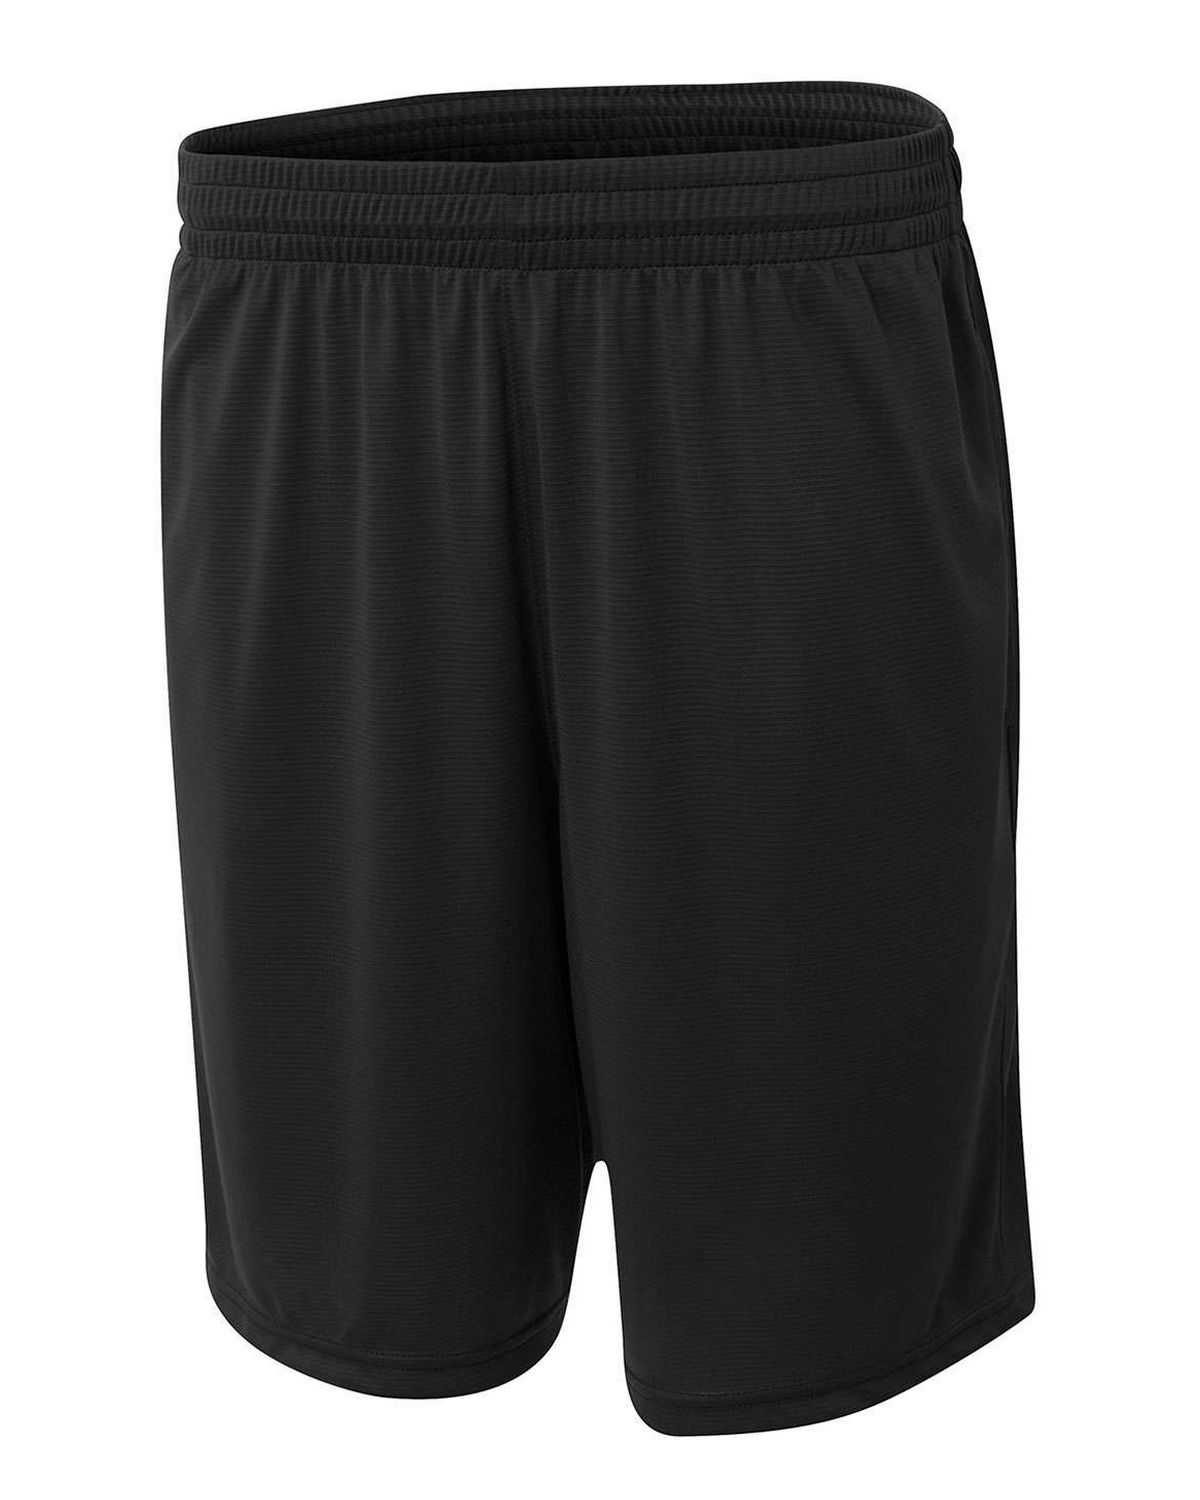 A4 N5370 Mens Player 10 inch Pocketed Polyester Short